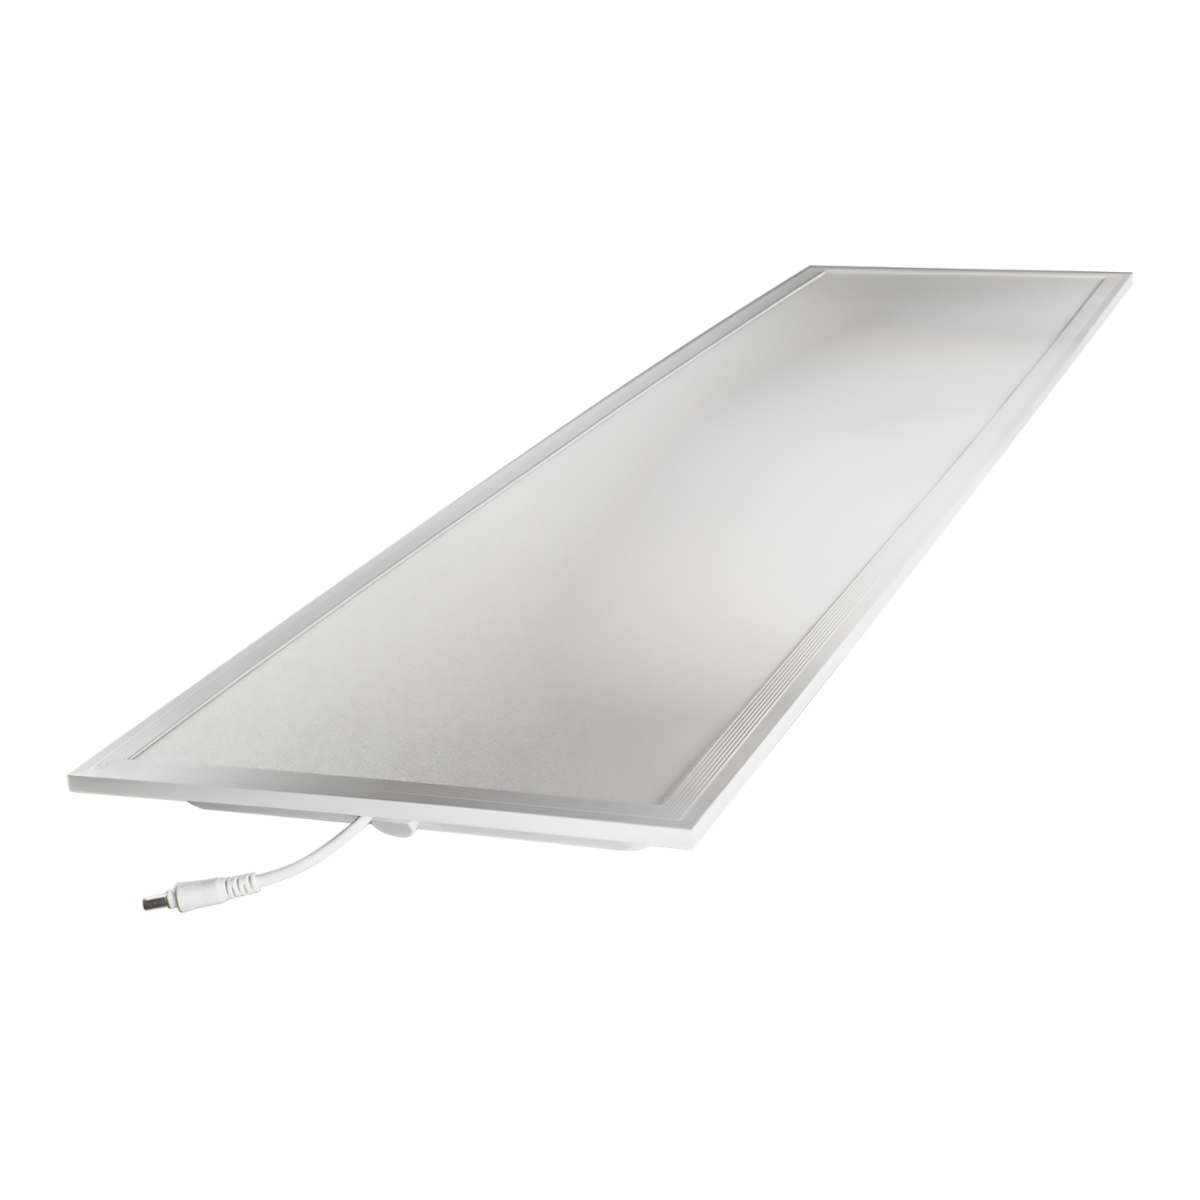 Noxion LED Panel Delta Pro V2.0 Xitanium DALI 30W 30x120cm 3000K 3960lm UGR <19 | Dali Dimmable - Replacer for 2x36W